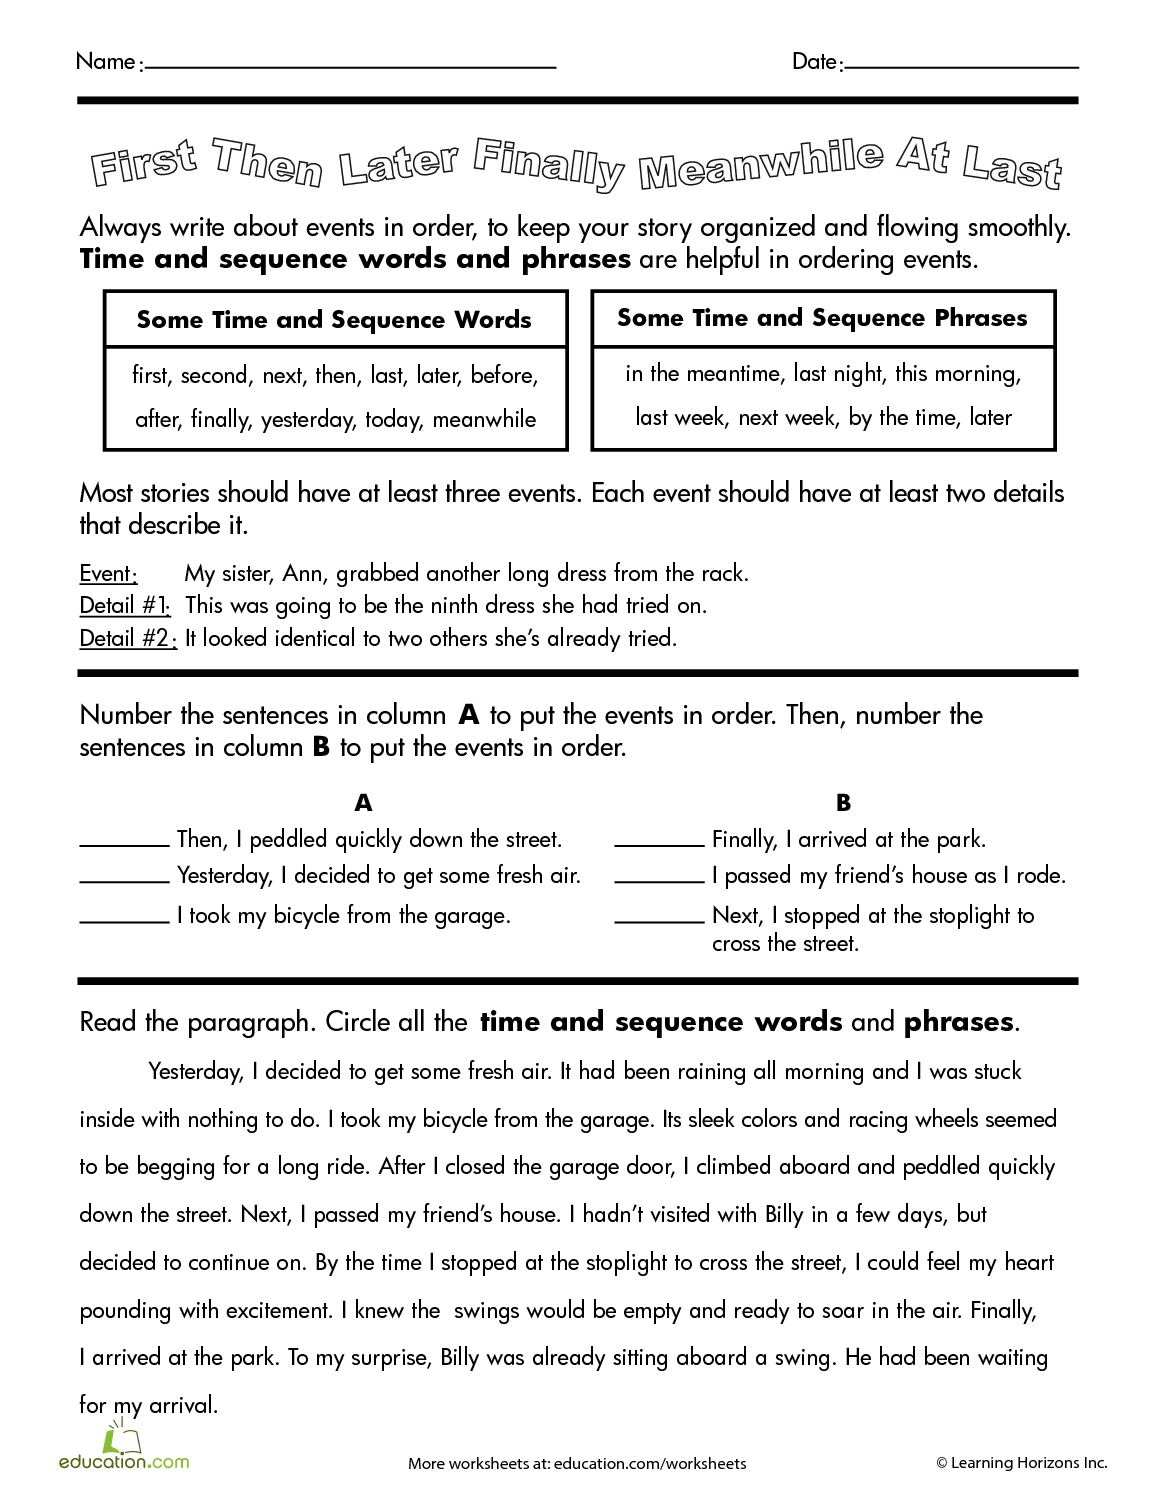 May in Kindergarten   FREEBIES   kids learning   Kindergarten besides Sequencing Stories   First  Next  Then  Last  Set 1    Holiday also Sequence Connectors in addition Time Connectives worksheet by louisacarol   Teaching Resources further first next last worksheets for kindergarten also Pancake writing sequence  by amiecr88   Teaching Resources also 4 ms file1 adverbs of sequence ppt further English worksheets  writing and  munication activity as well 3rd grade paragraph writing worksheets also 55 Best Sequencing First Next Last images in 2016   Reading as well First  then  after that  finally    ESL worksheet by elisaana moreover sequence of events worksheets pdf besides First  Next  Then  Last  Graphic Organizer Template   K 5  puter additionally Easter Sch and Language Activities for Sch Therapy   Teaching additionally Calaméo   Keep your stories Organized additionally Past Simple Tense Verbs Worksheet Of Worksheets Tenses Verb. on first next then finally worksheet